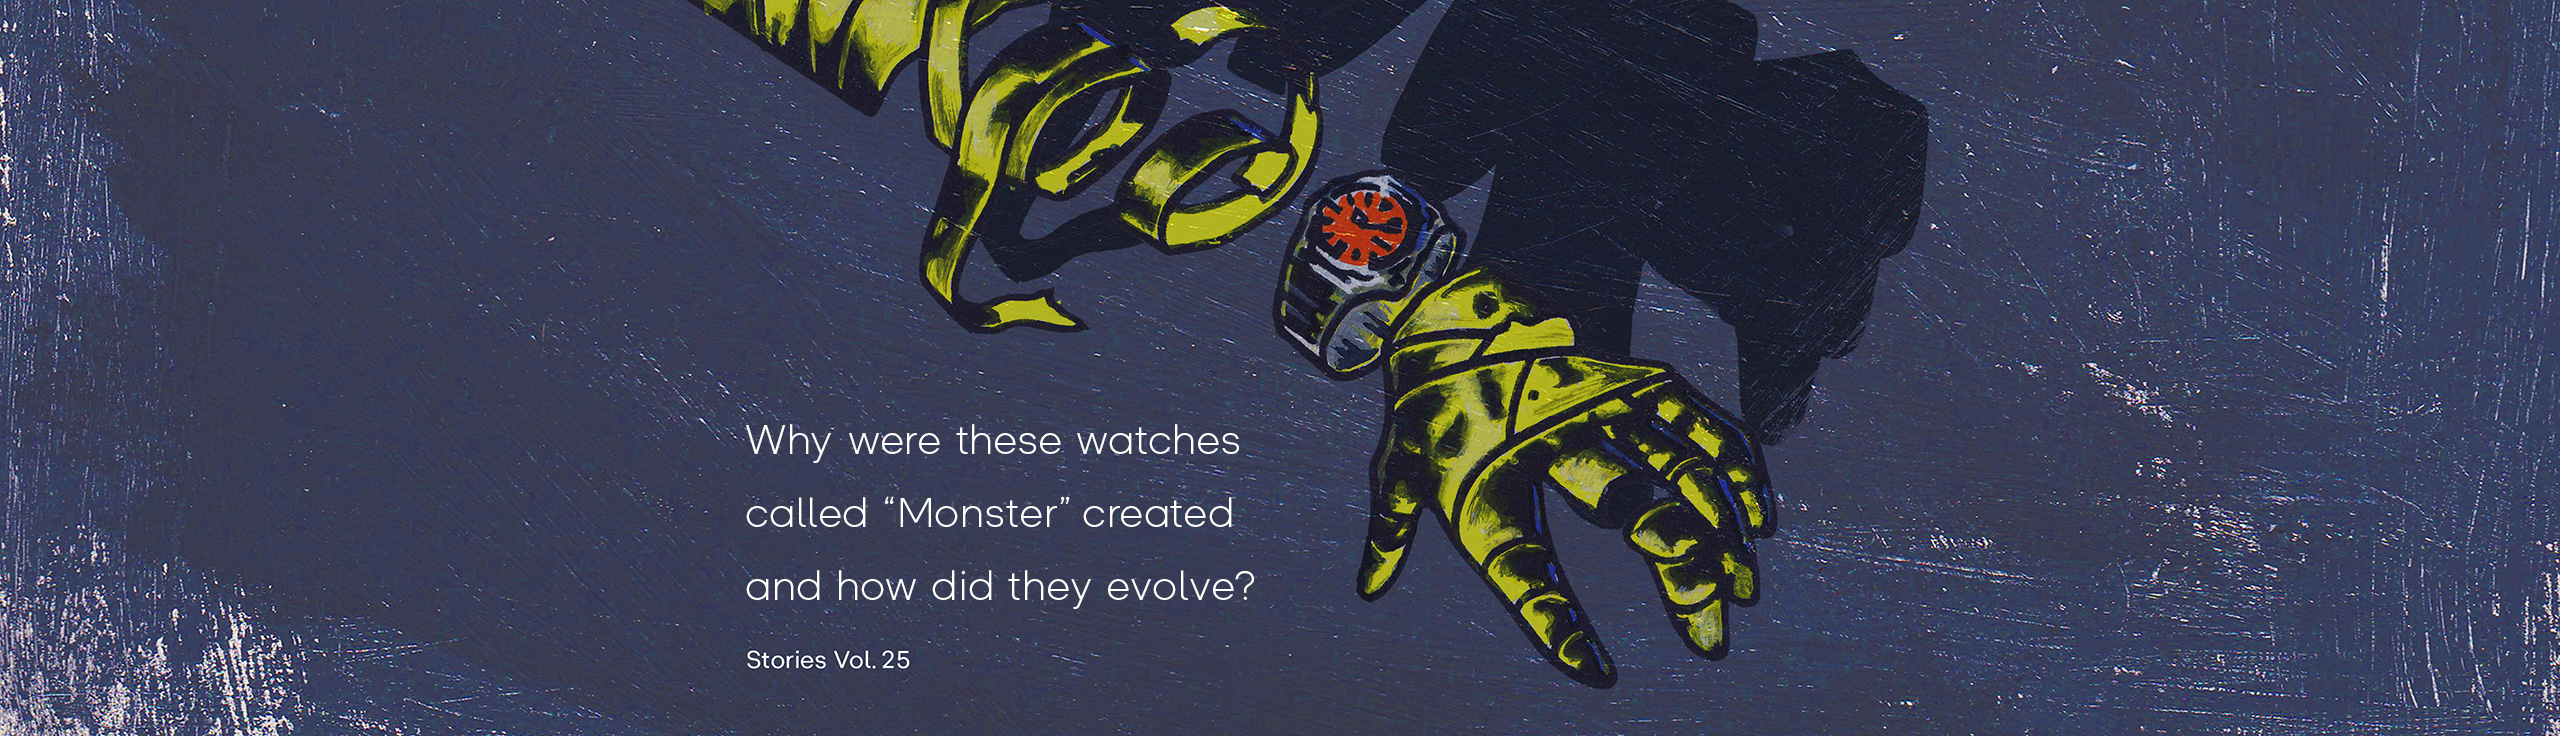 """Vol.25 Why were these watches called """"Monster"""" created and how did they evolve?"""